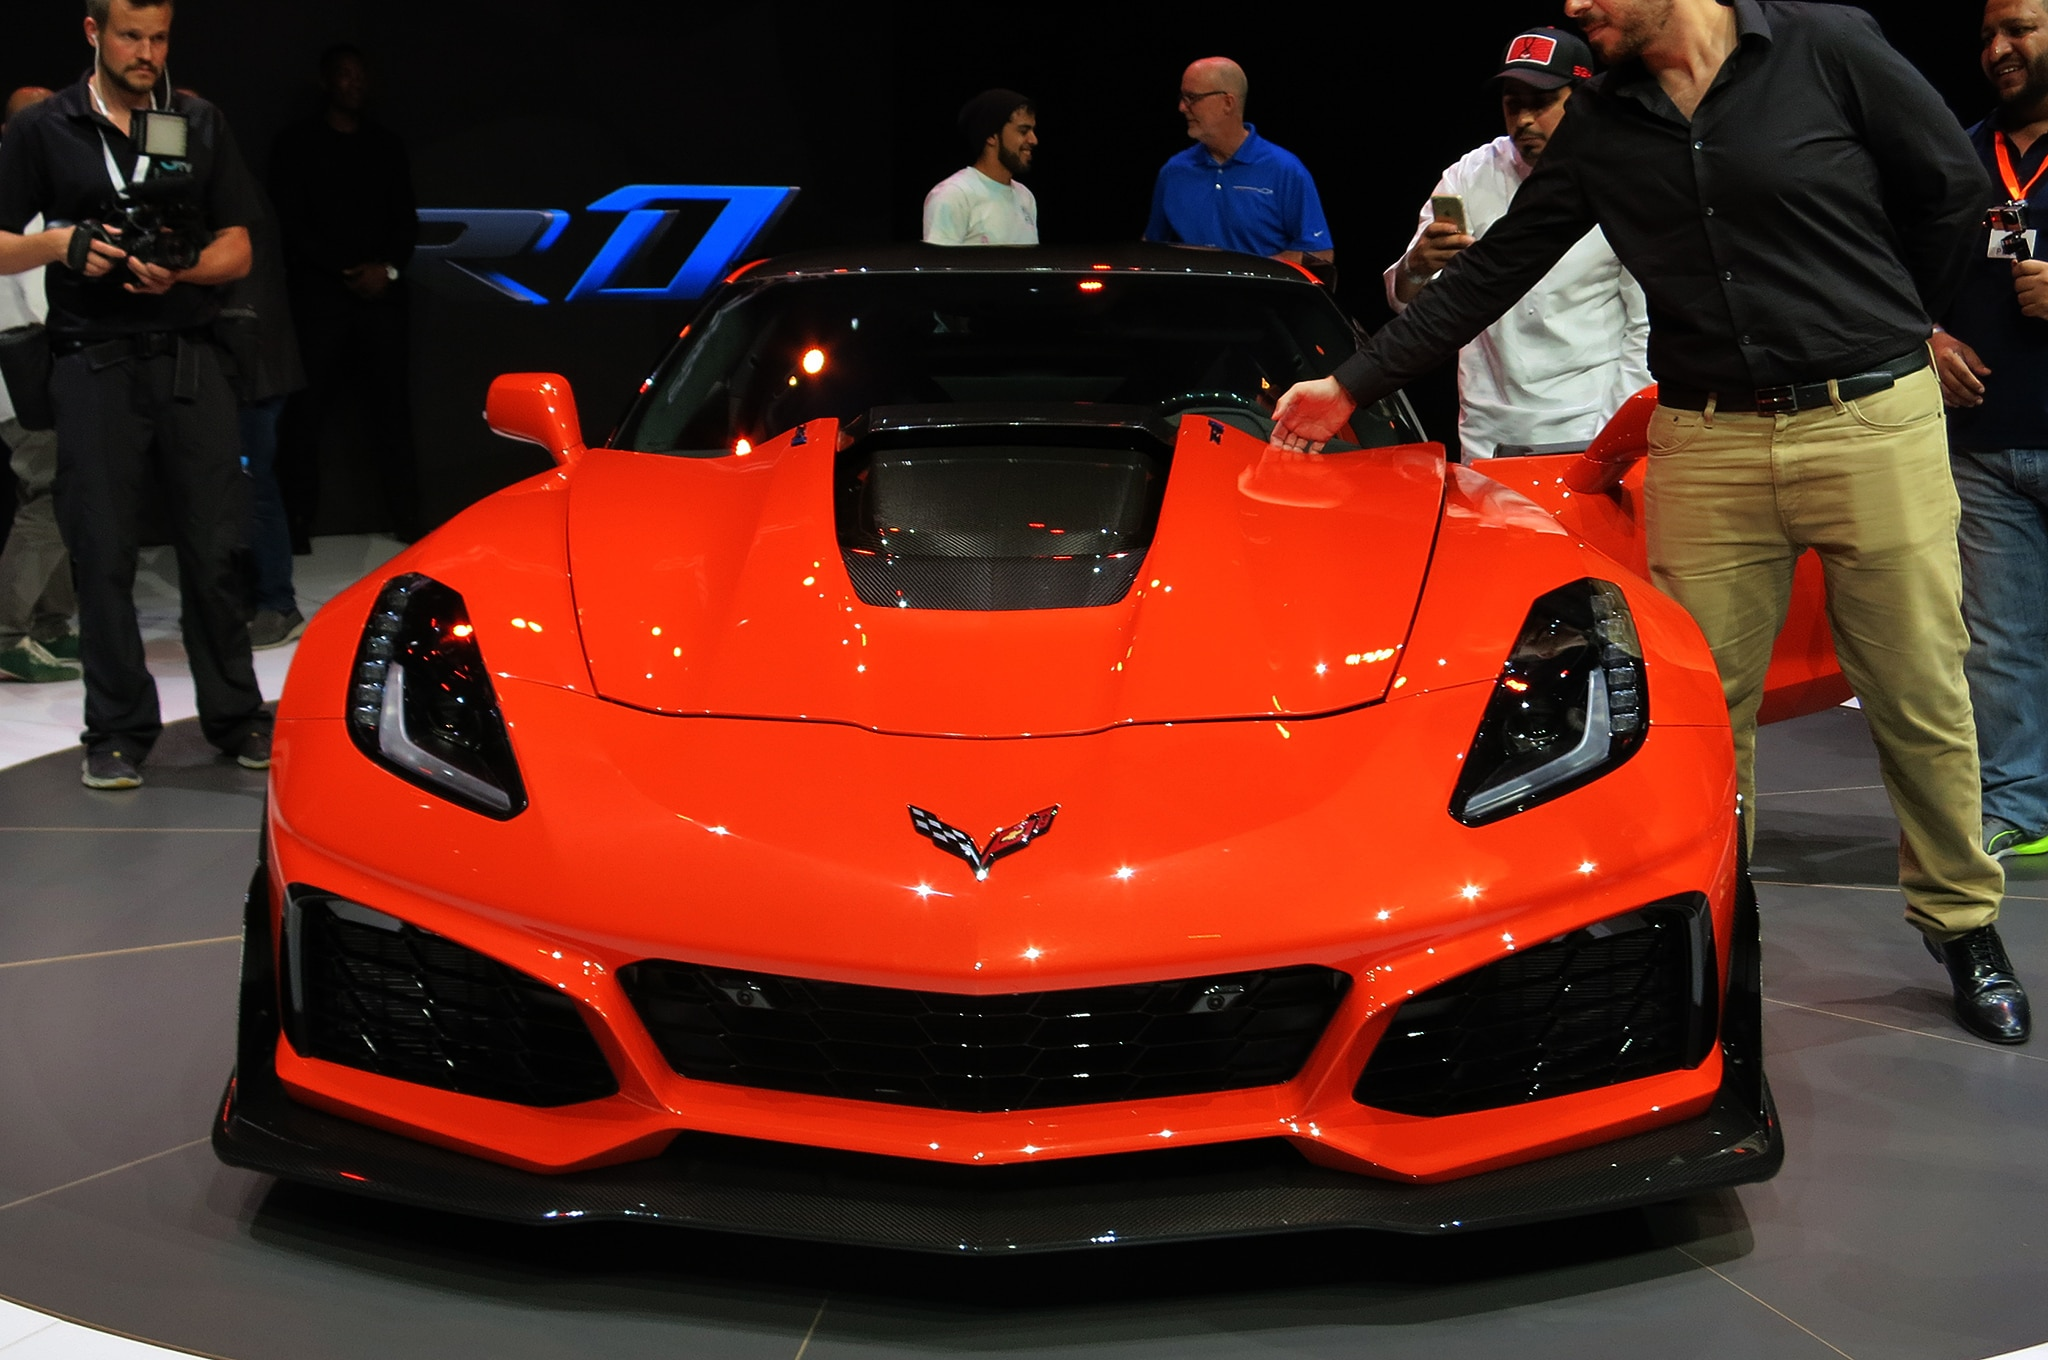 755-Horsepower 2019 Chevy Corvette ZR1 is the Fastest ...